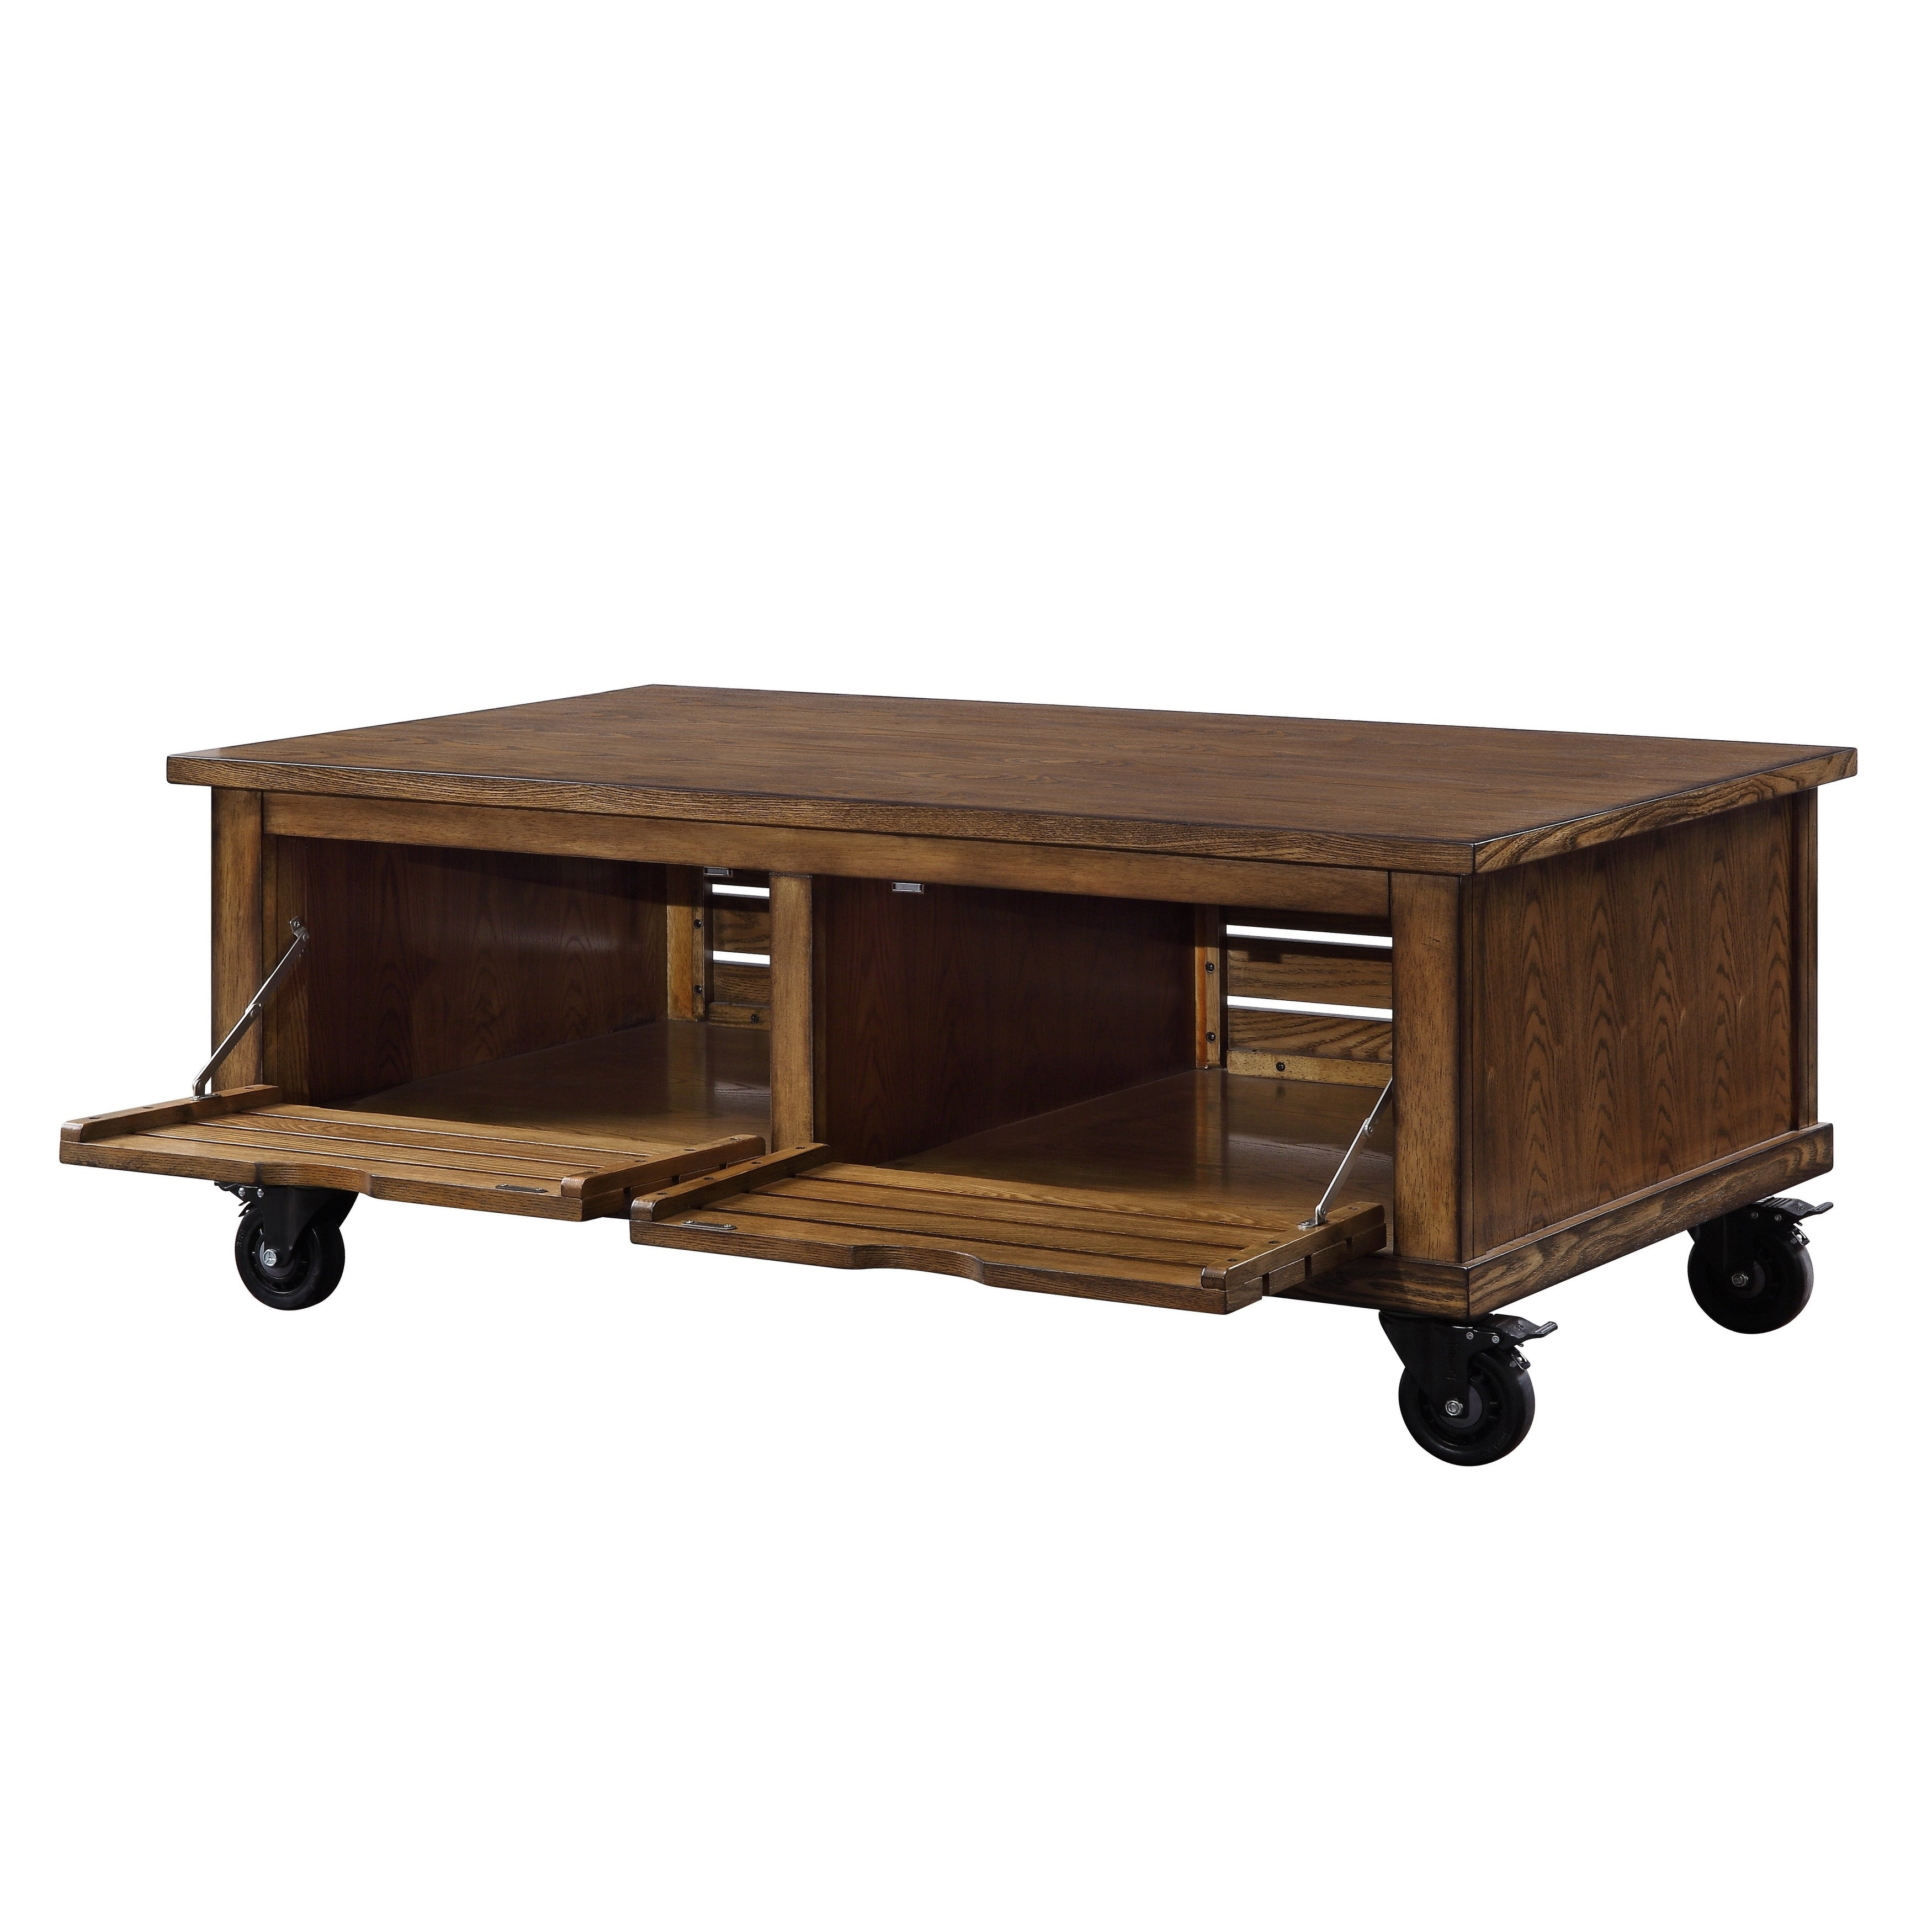 - Shop Wooden Coffee Table With Drop Down Storage And Caster Wheels